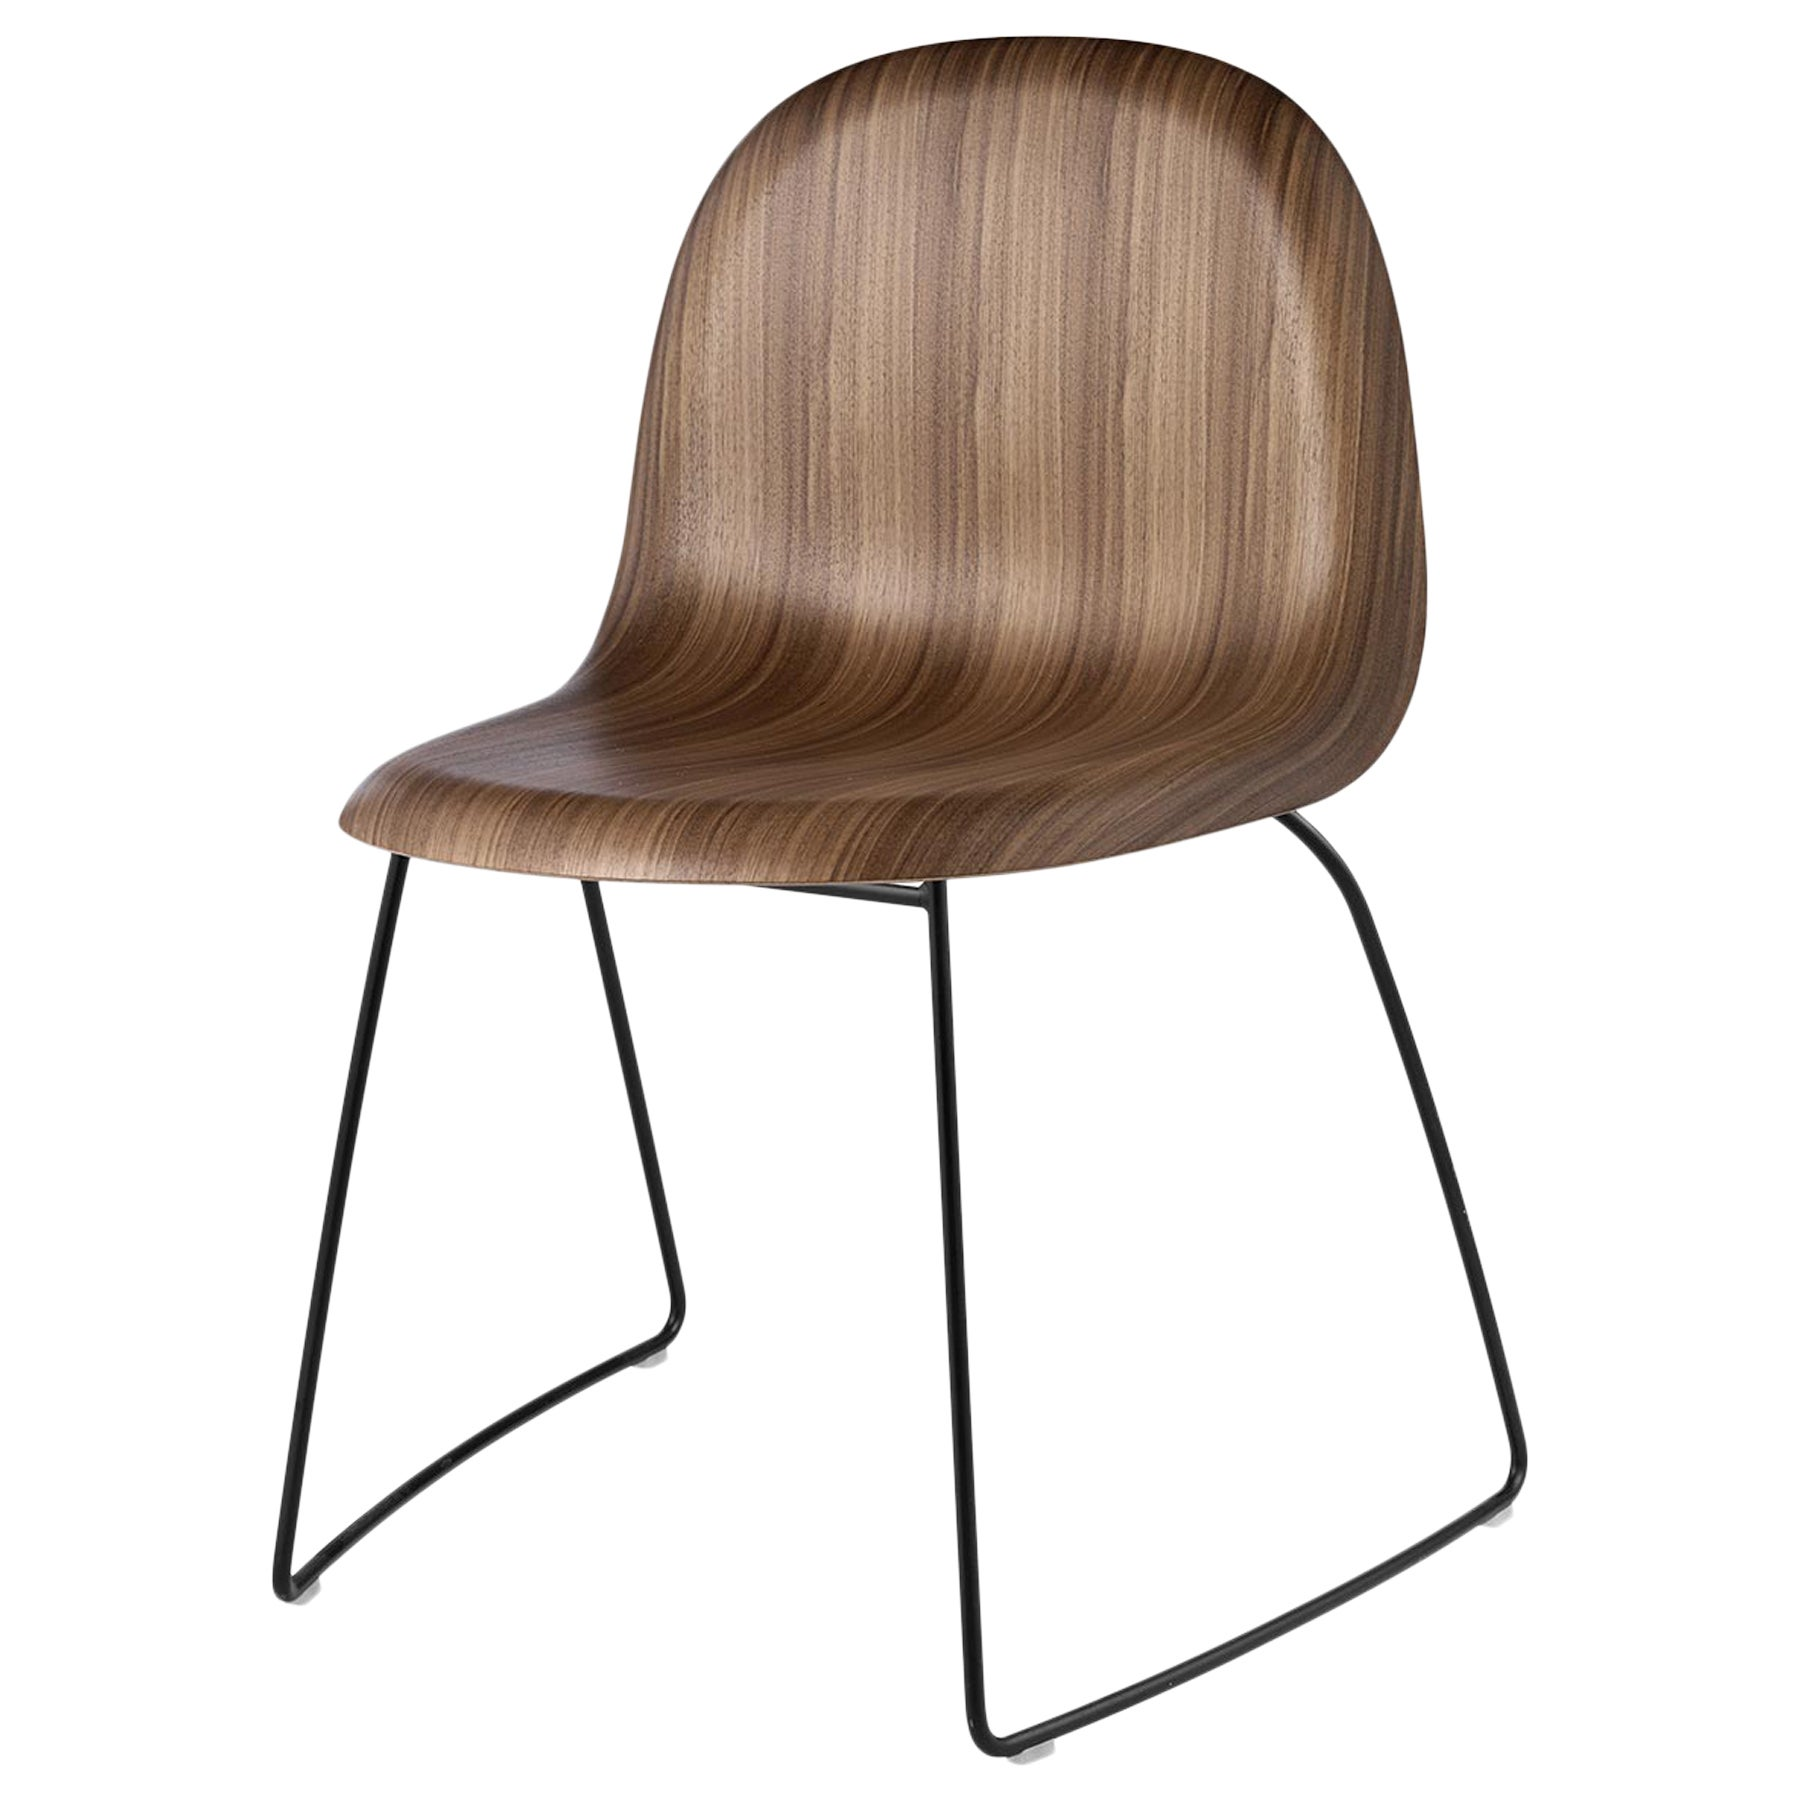 3D Dining Chair, Un-Upholstered, Sledge Base, Wood Shell